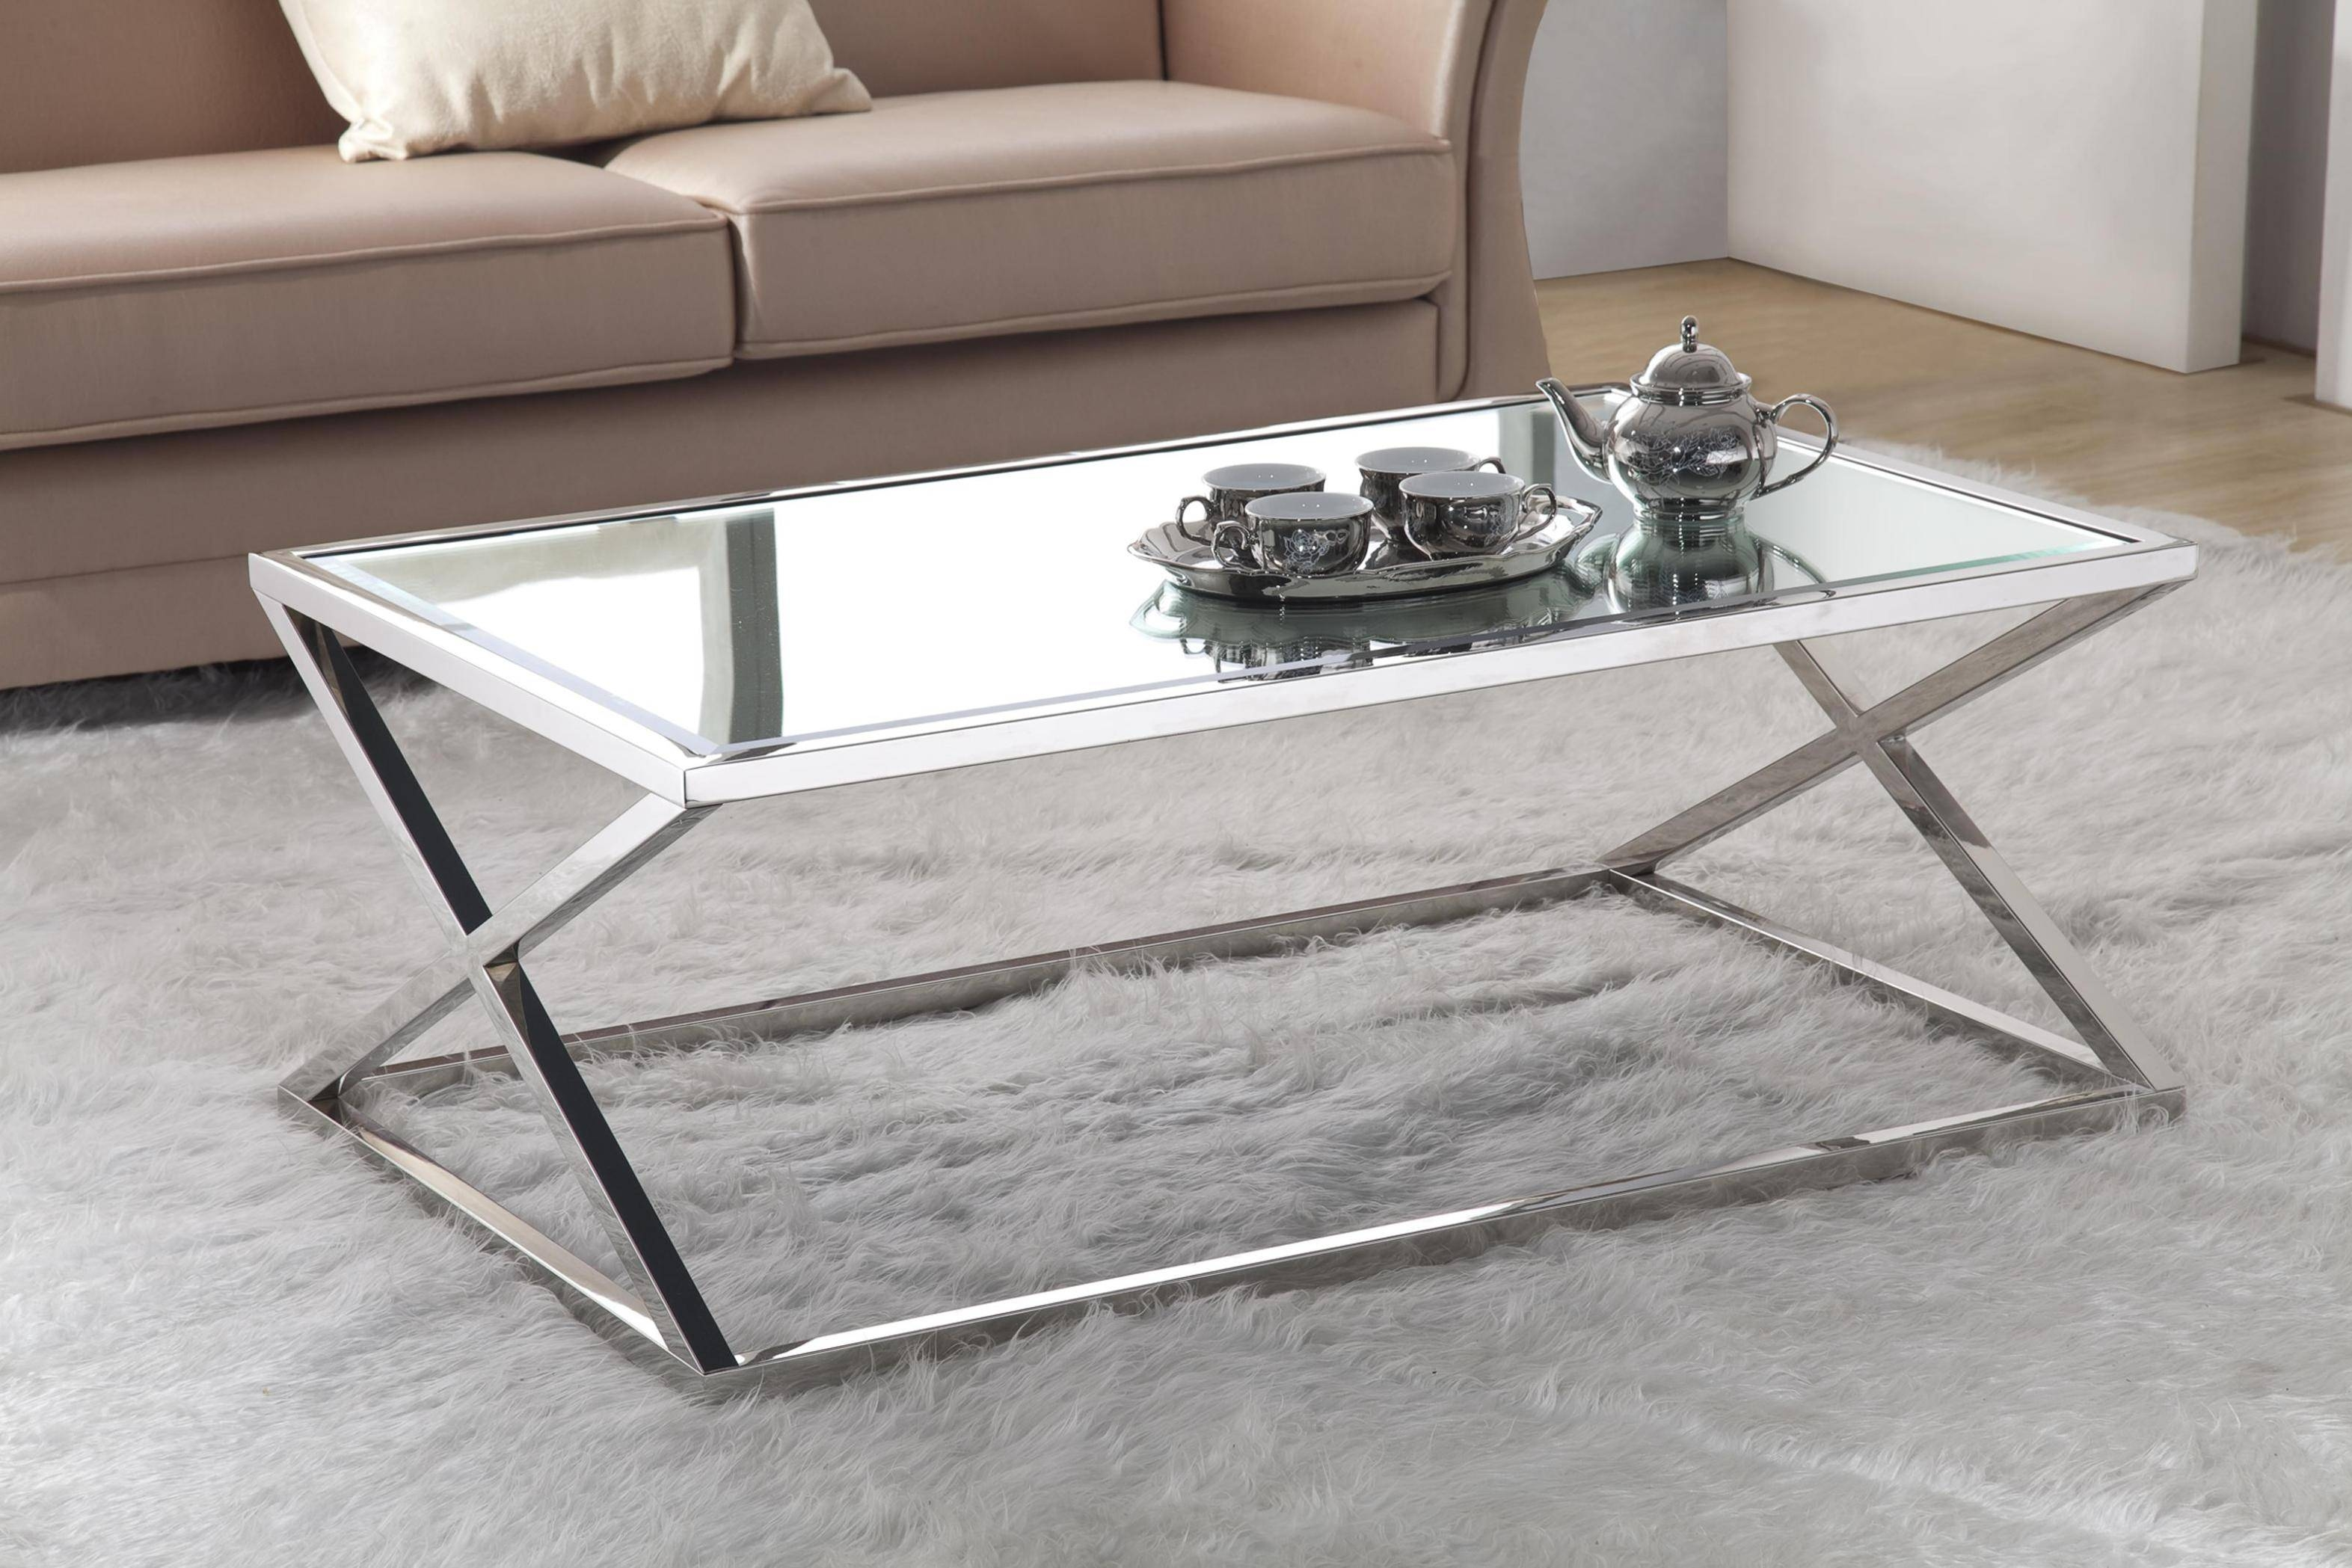 Coffee Table With Glass Top In Chrome Finish | Coffee Tables Intended For Chrome And Wood Coffee Tables (View 8 of 30)